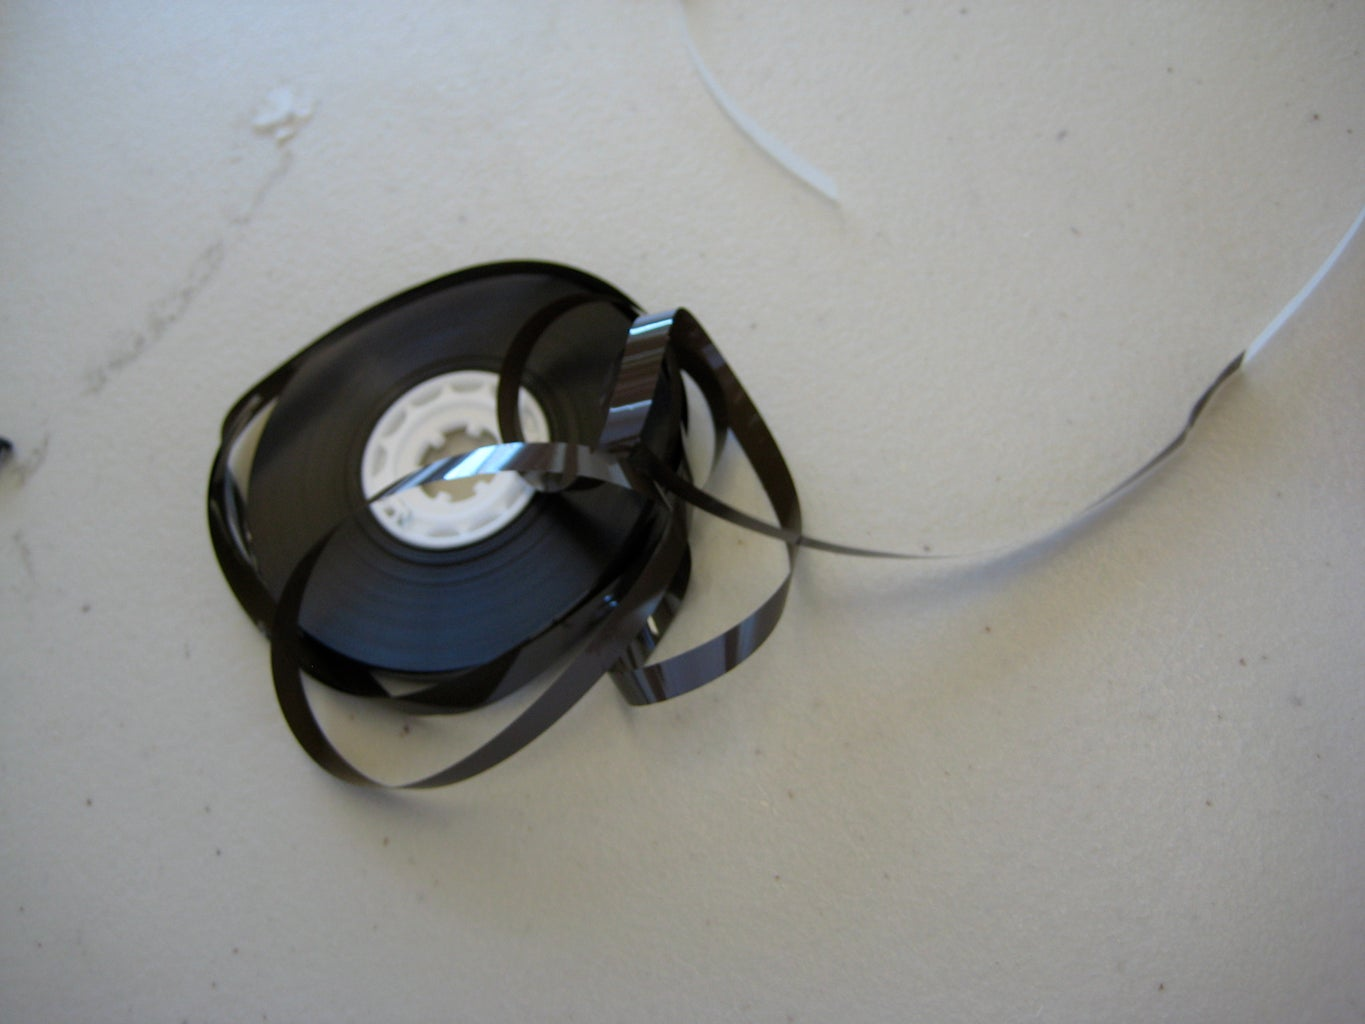 Cut Some Magnetic Tape